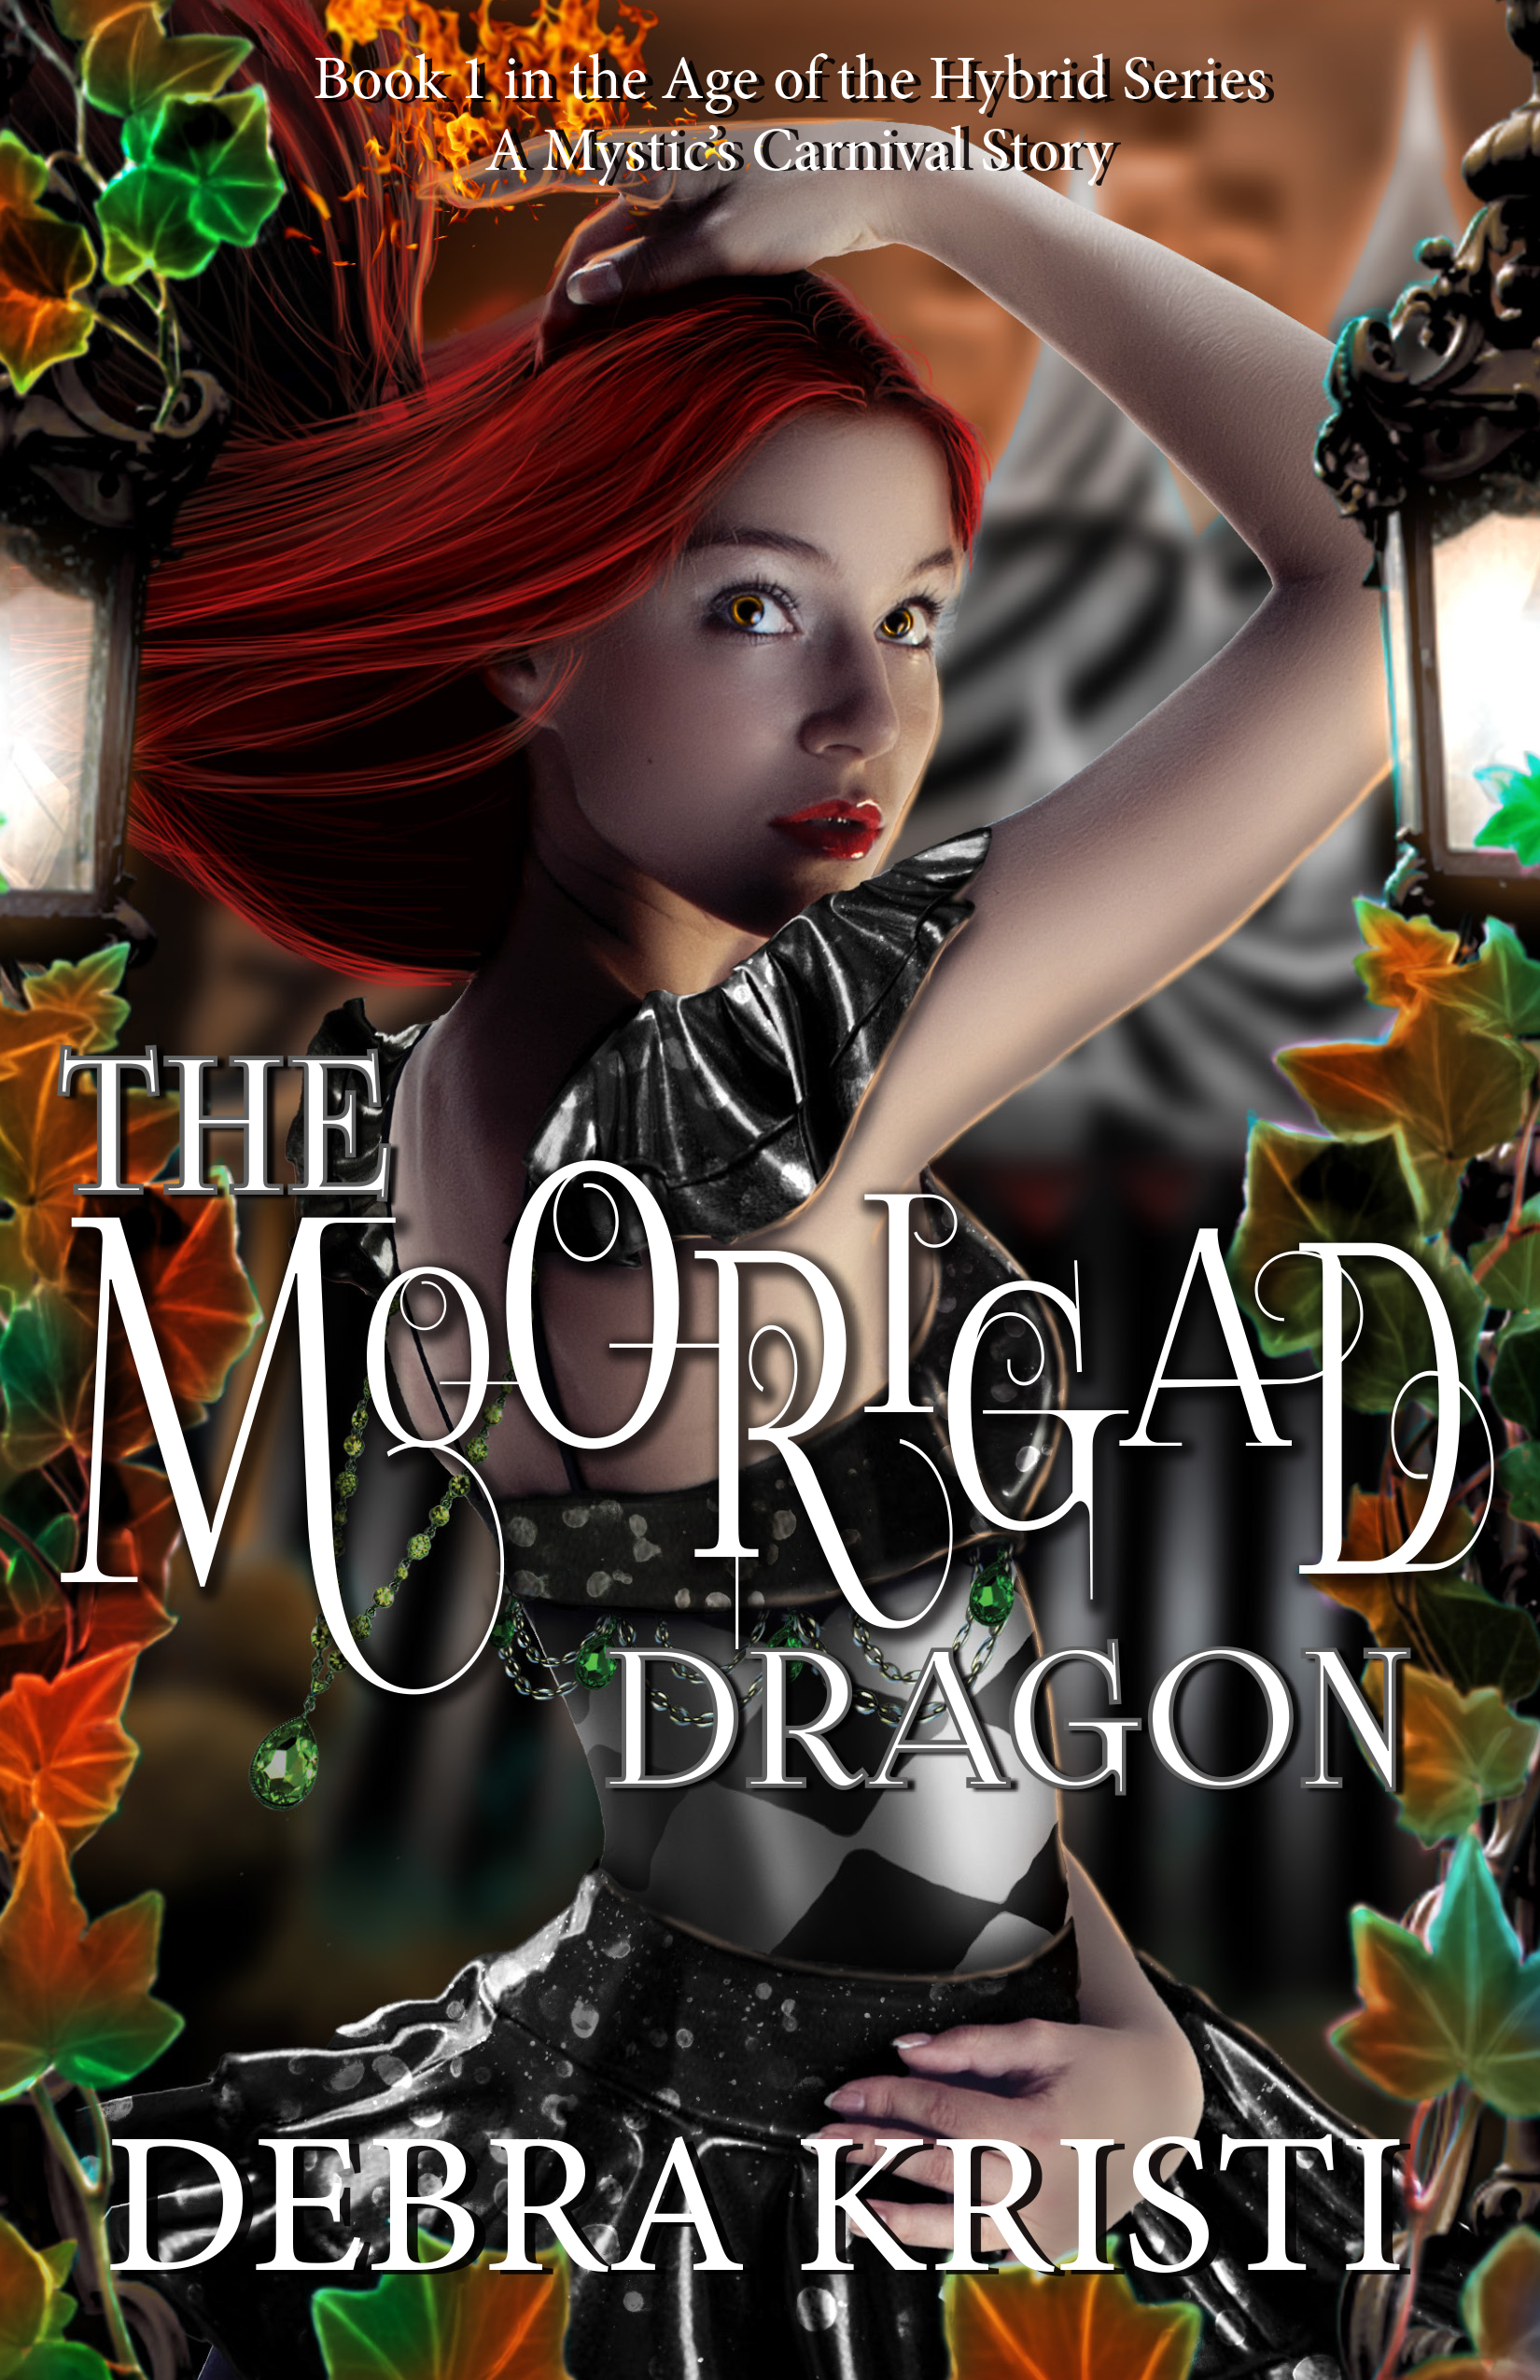 The Moorigad Dragon Cover in A Mystic's Carnival Novel Gets a New Look by Mystic's